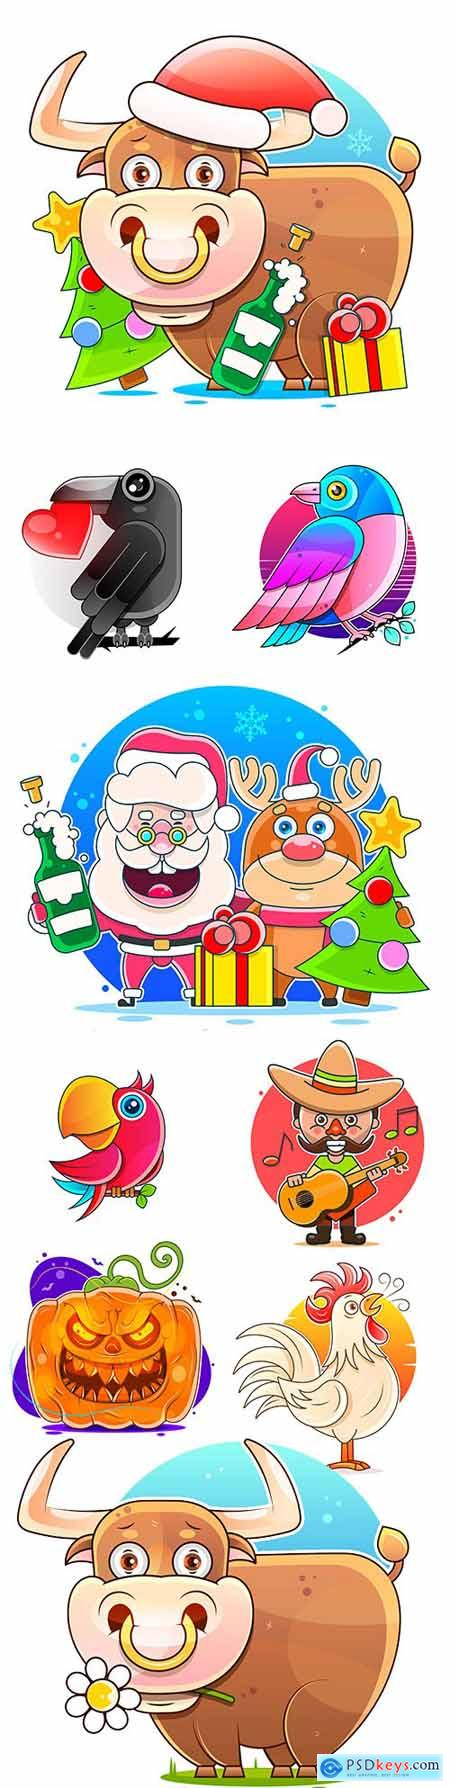 Symbol of year bull and collection of different cartoon characters illustration